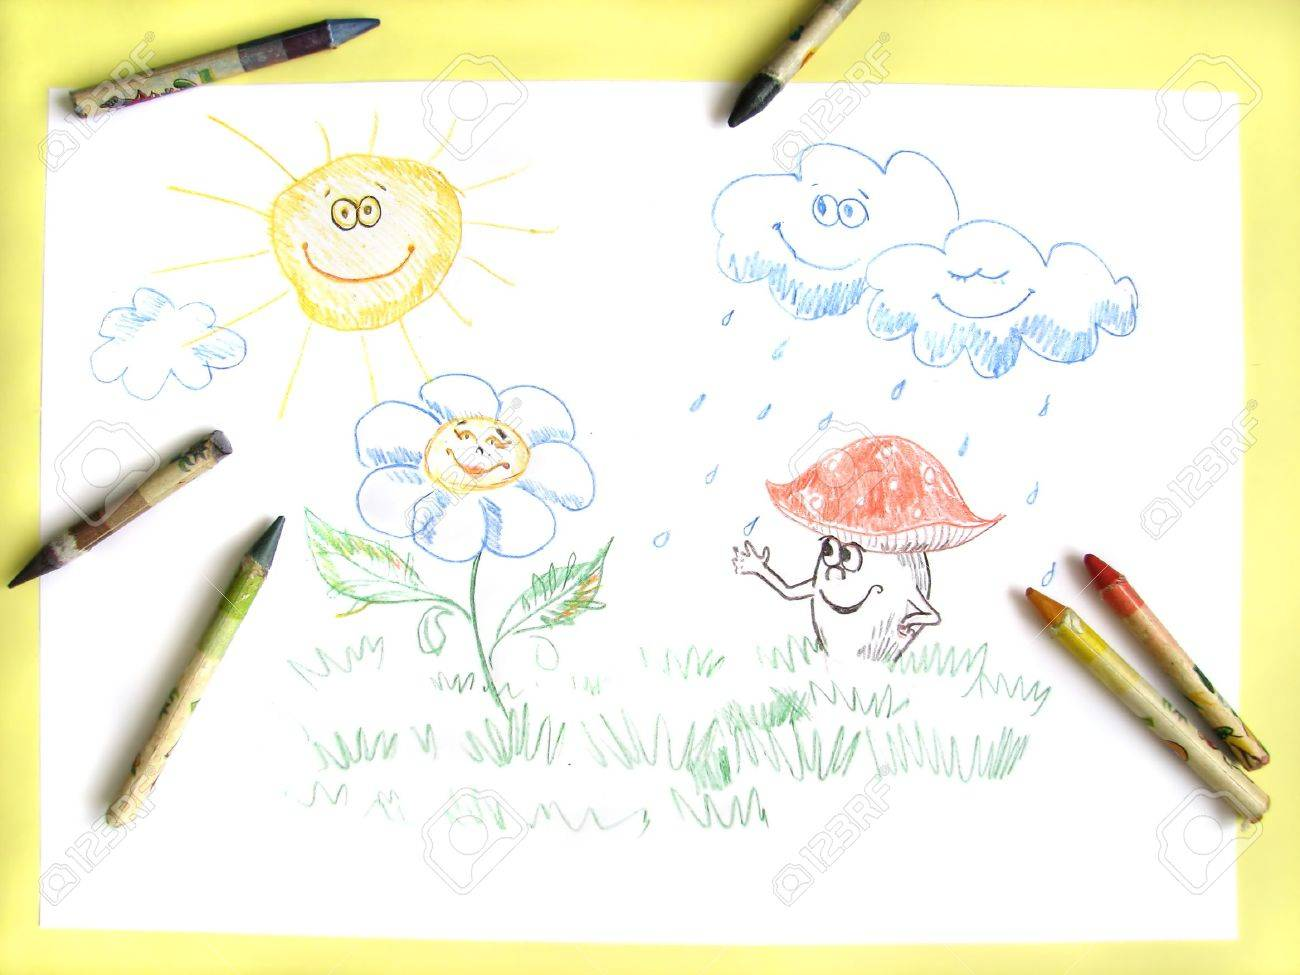 1300x975 Kids Pencil Drawing Of Happy Sun, Clouds, Flower And Mushroom